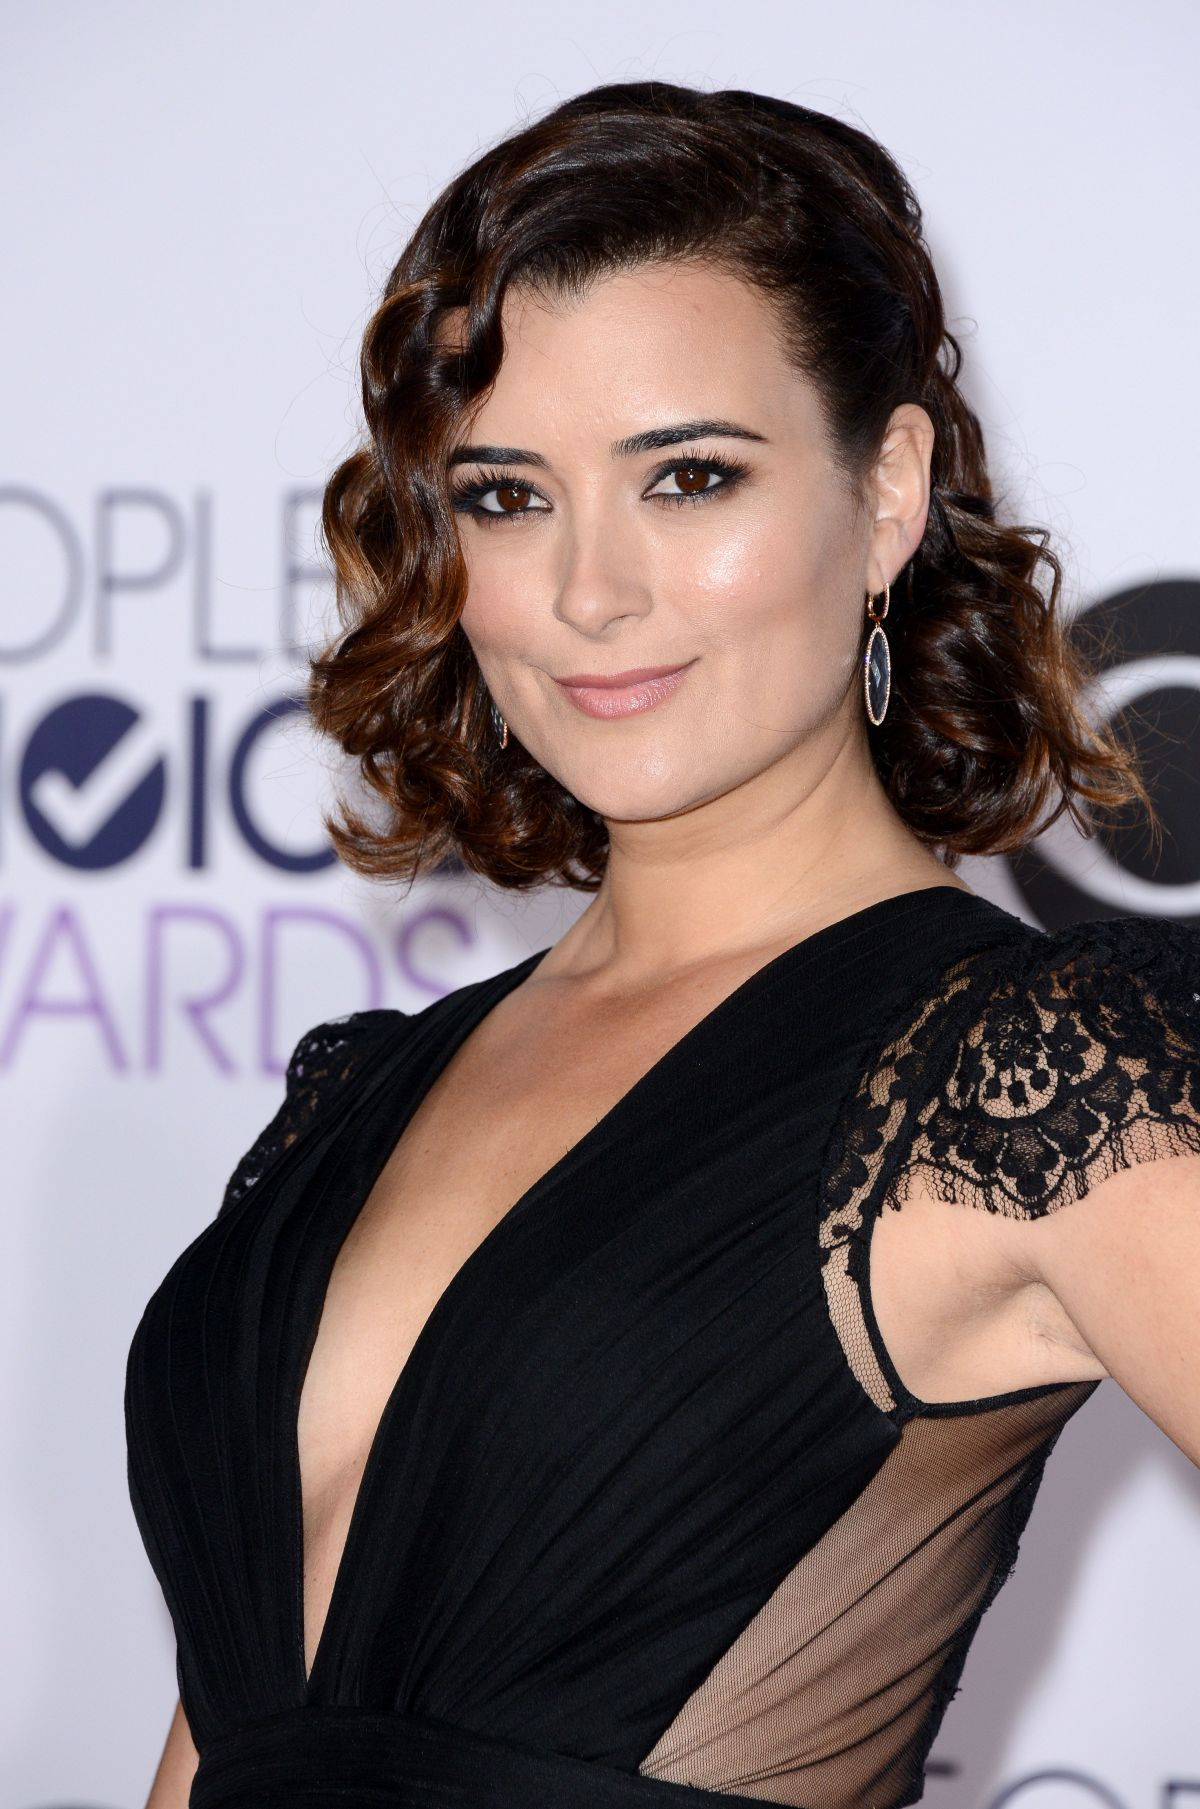 Cote de Pablo earned a 0.12 million dollar salary - leaving the net worth at 6 million in 2018